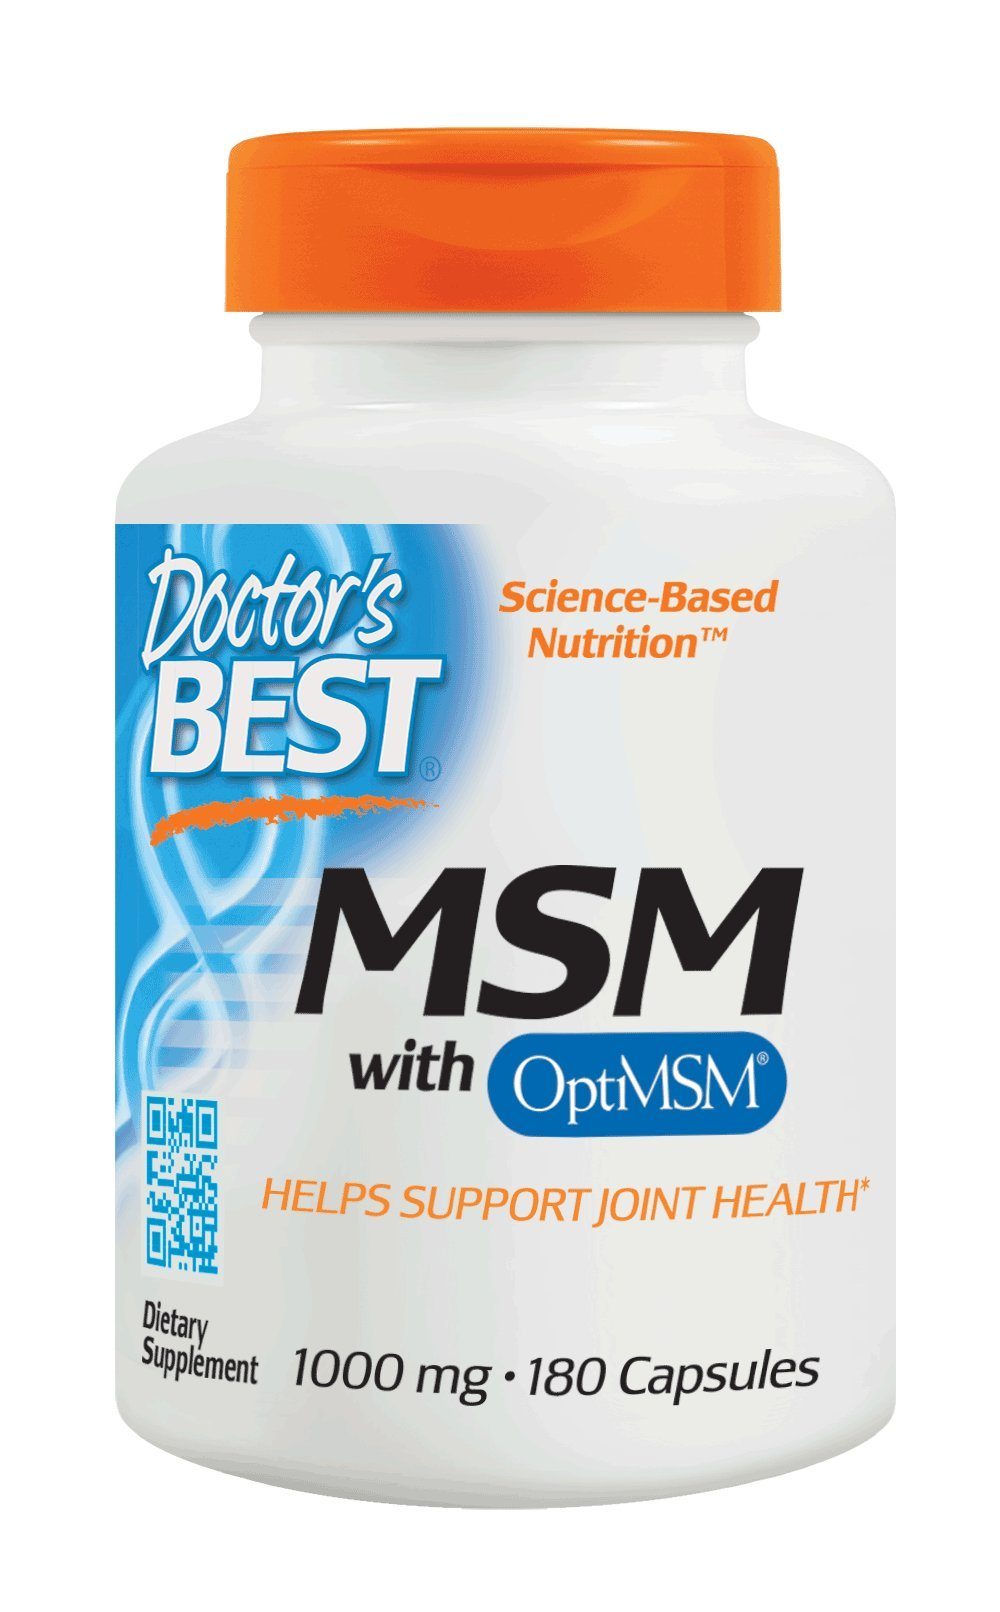 Doctor's Best MSM with OptiMSM, Non-GMO, Gluten Free, Joint Support, 1000 mg, 180 Caps